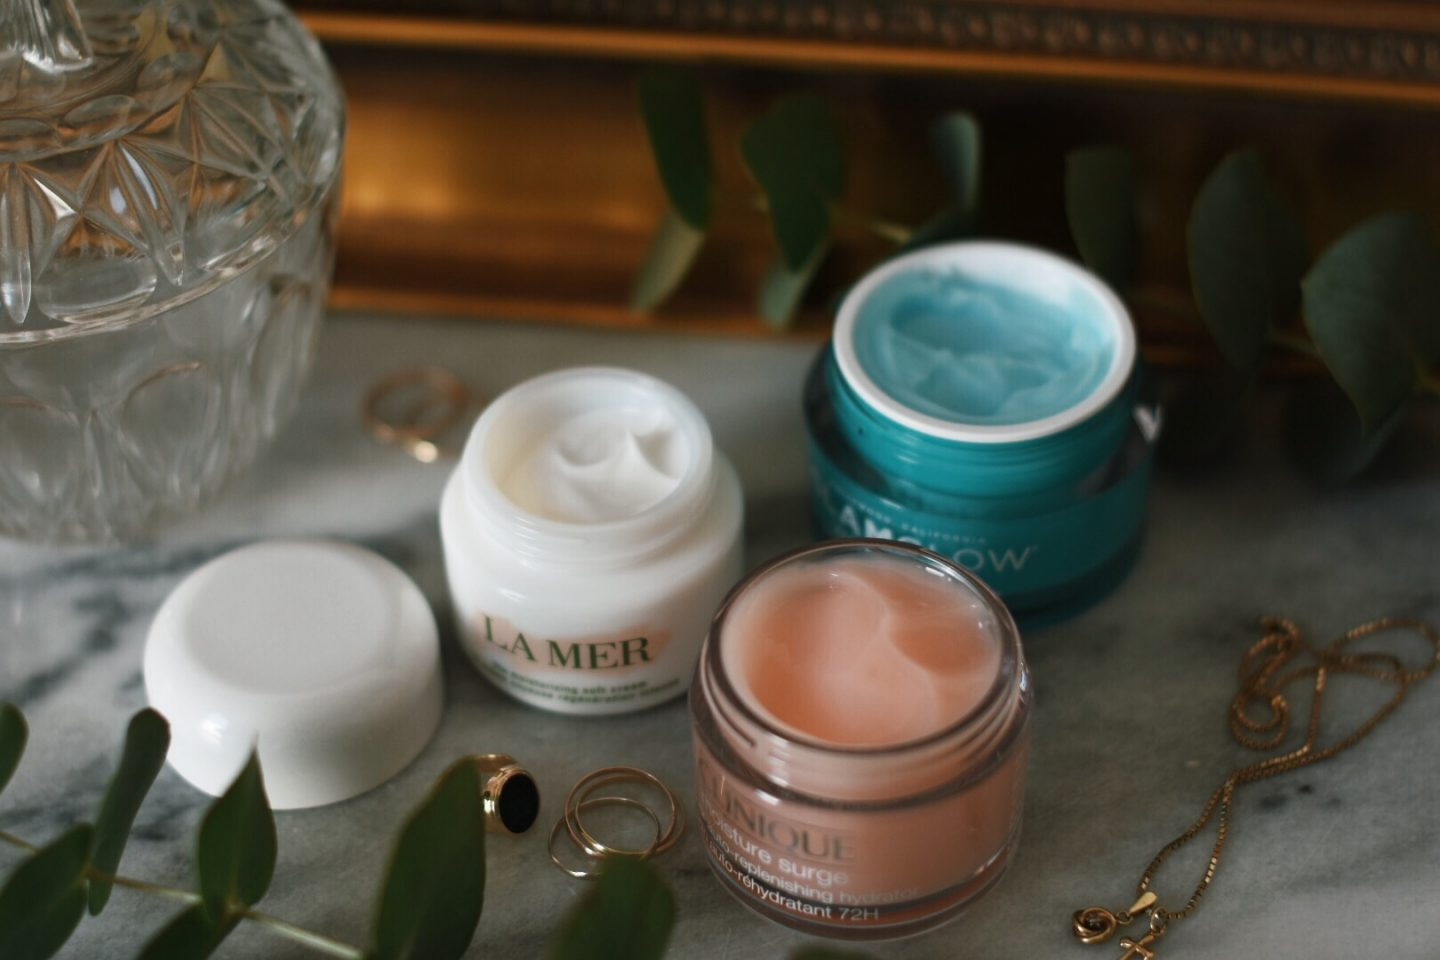 Tested: face moisturizer from La Mer, Clinique & Glamglow